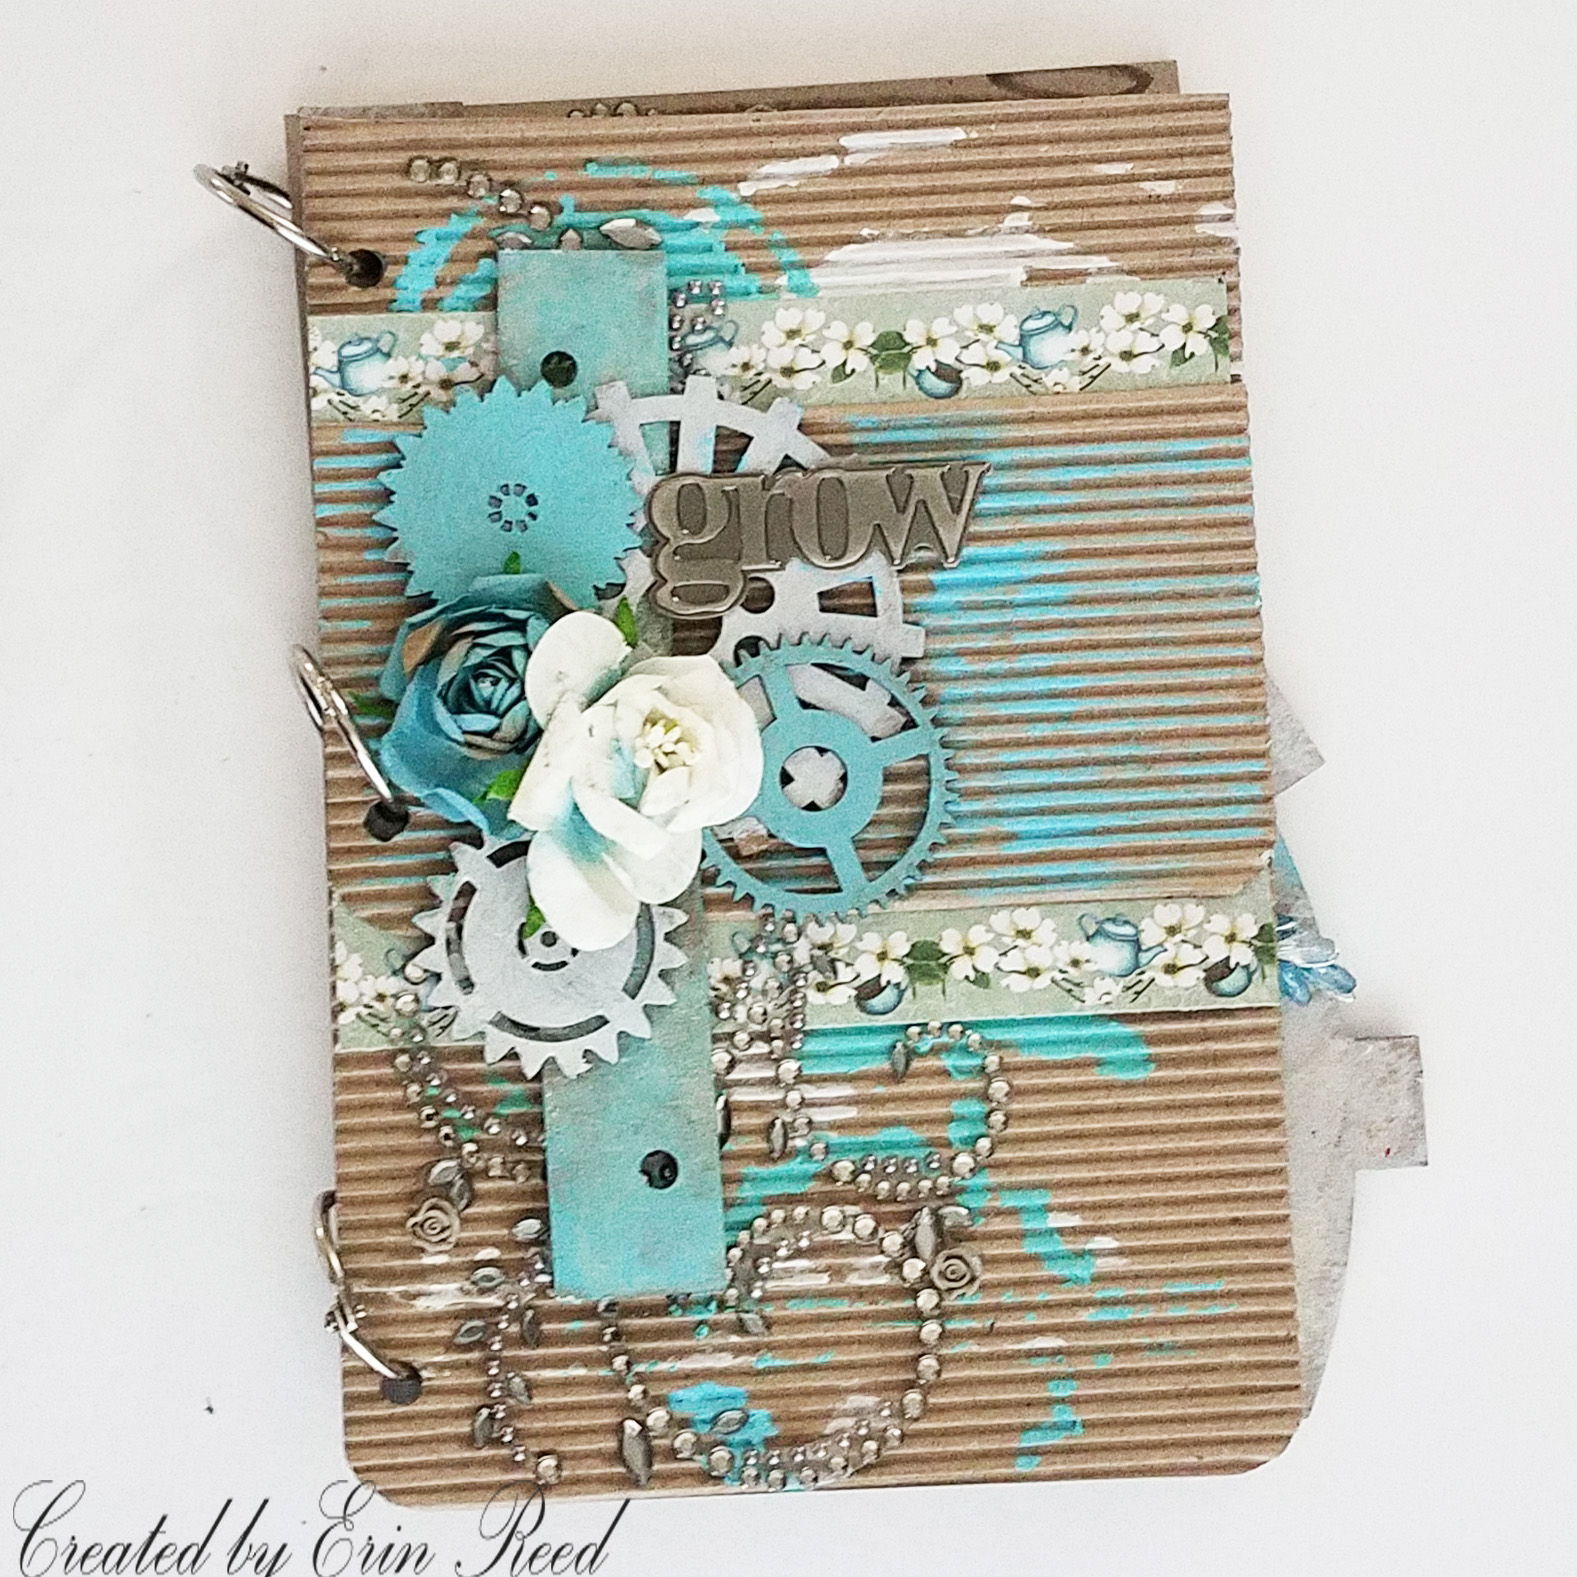 scrap books mixed media projects 26 black /& white drawings sketches stencils for art journal junk journal